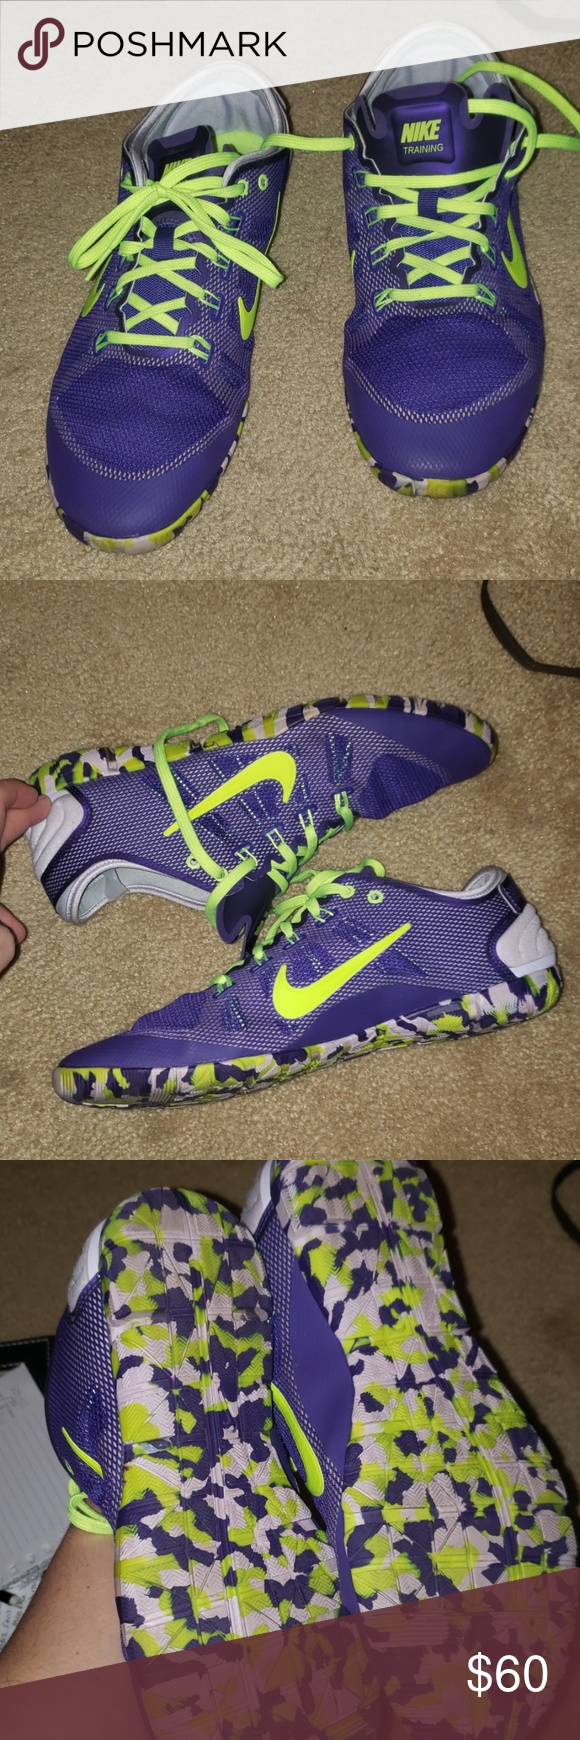 sale retailer 4a512 2eab2 Nike free bionics running shoes Used very good condition have been washed  twice. The Nike emblem has washed off on the footbed. Purple and neon green.